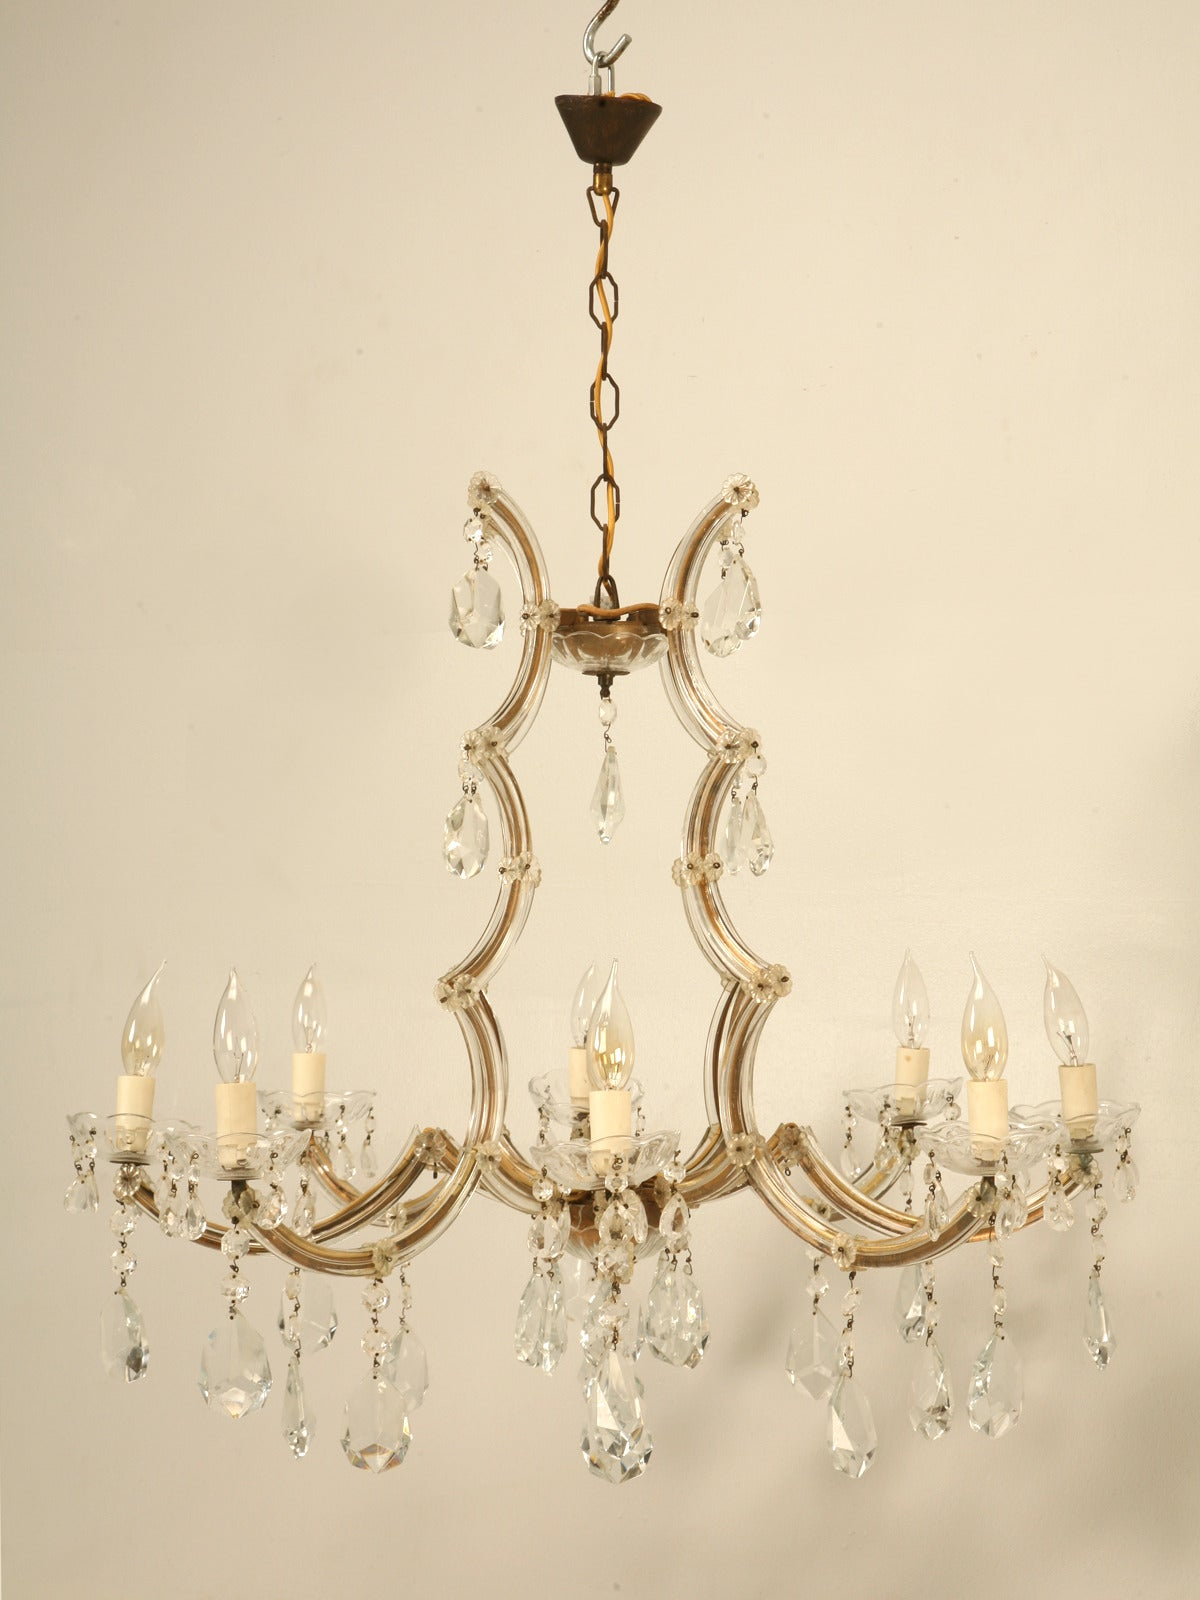 Spanish Chandelier in a Baroque Style circa 1930s For Sale at 1stdibs